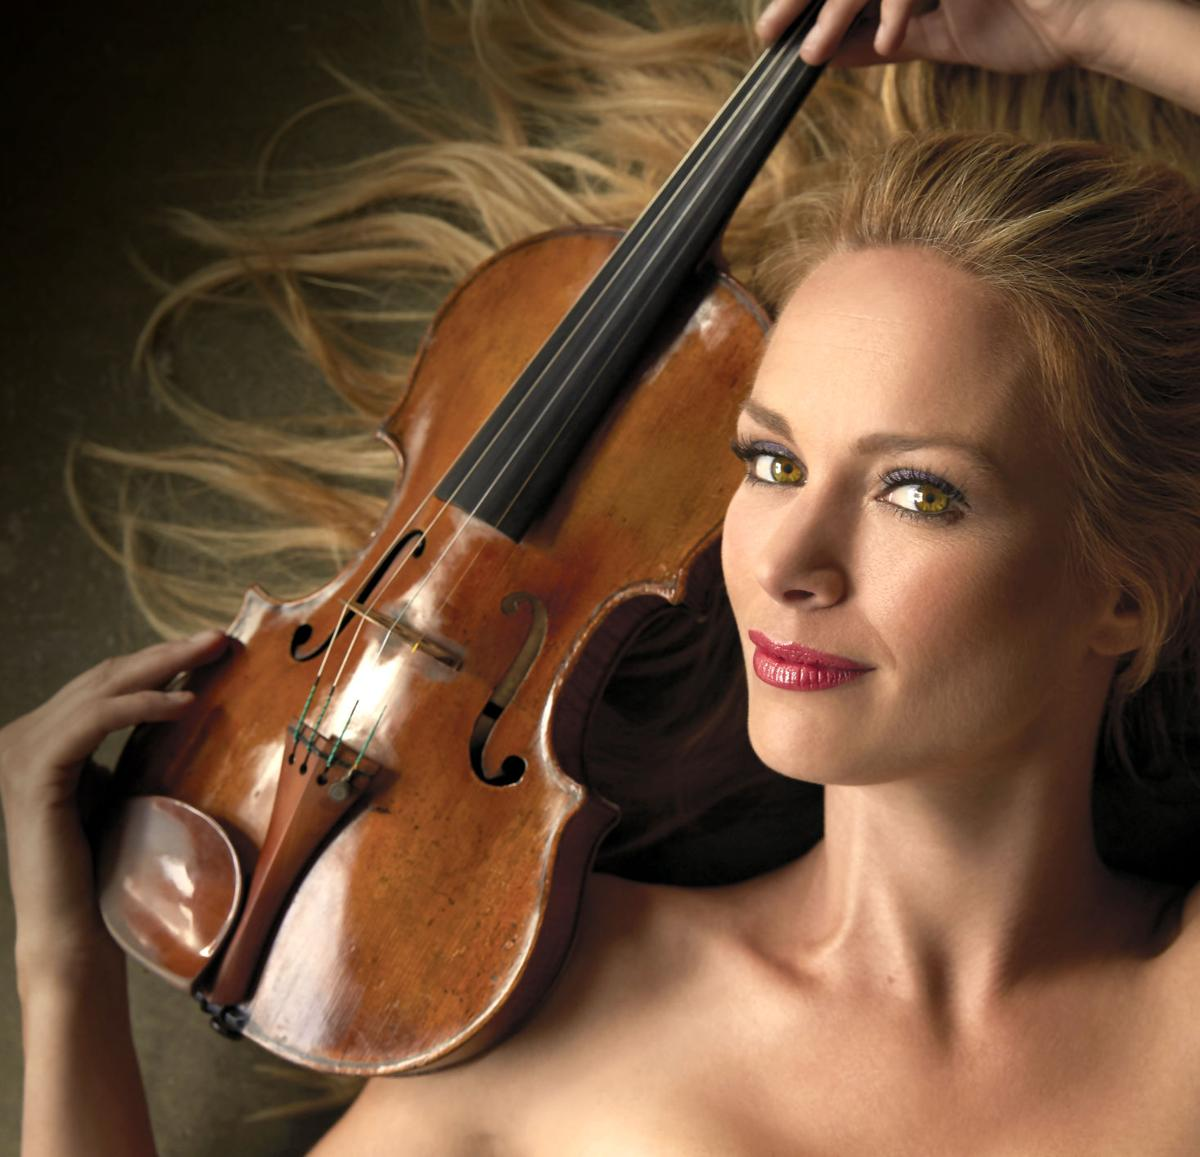 Classical crossover violinist Caroline Campbell will perform at the opening of the 46th season of the Victoria Symphony Orchestra on Sept. 21